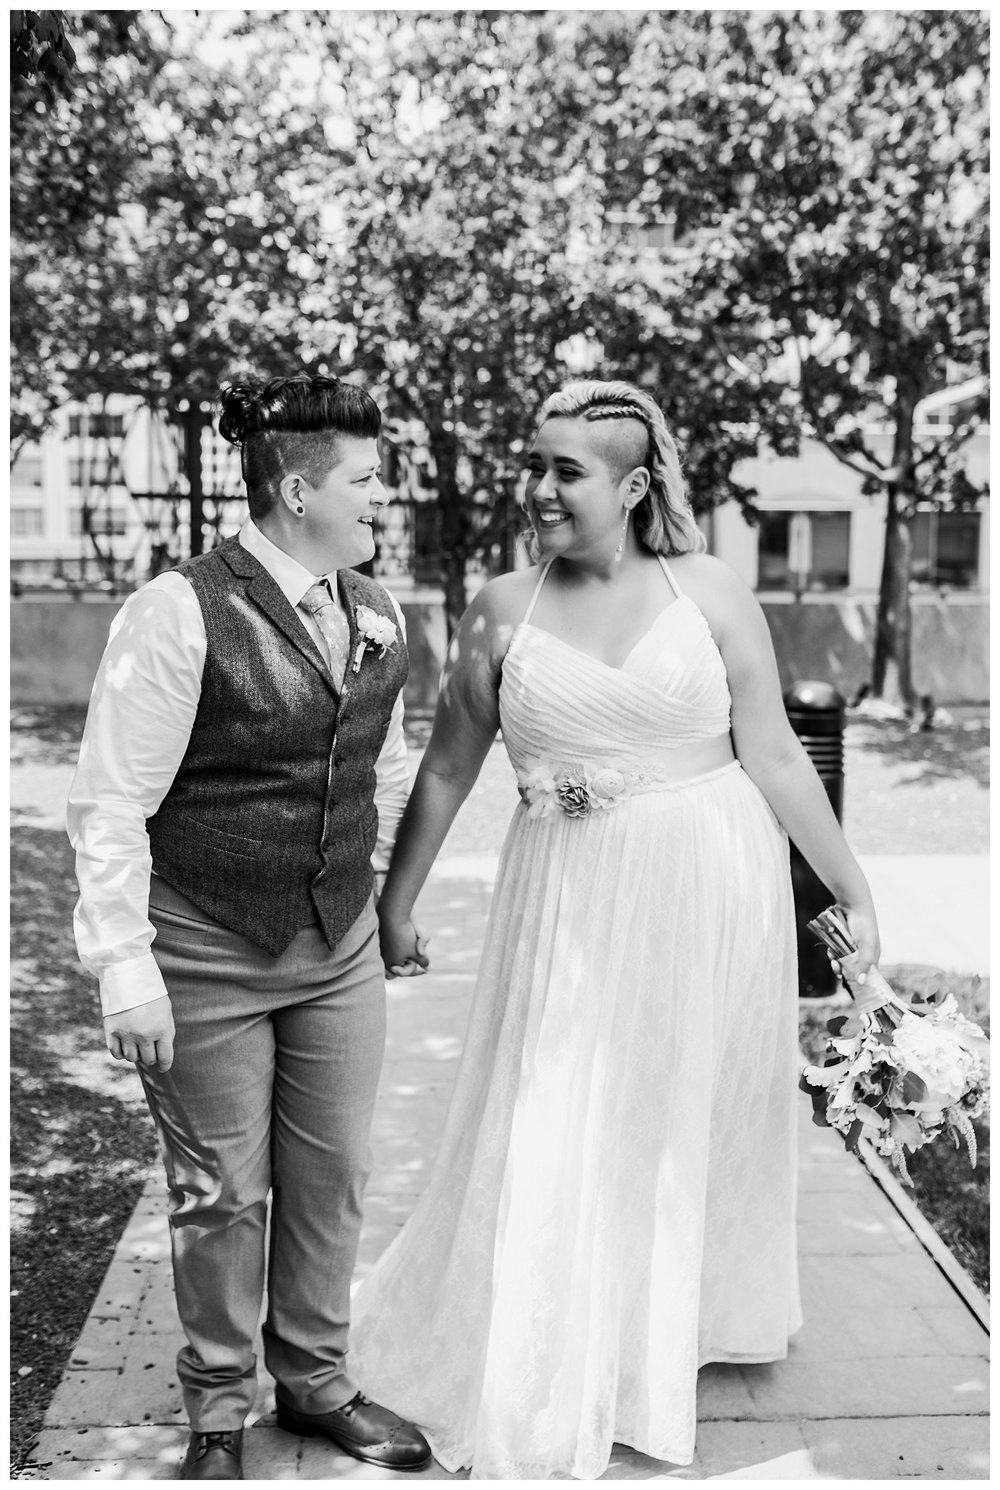 Kelsey_Diane_Photography_The_Vow_Exchange_Kansas_City_LGBT_Friendly_Wedding_Photographer_Kansas_City_Scout_Ica_0711.jpg